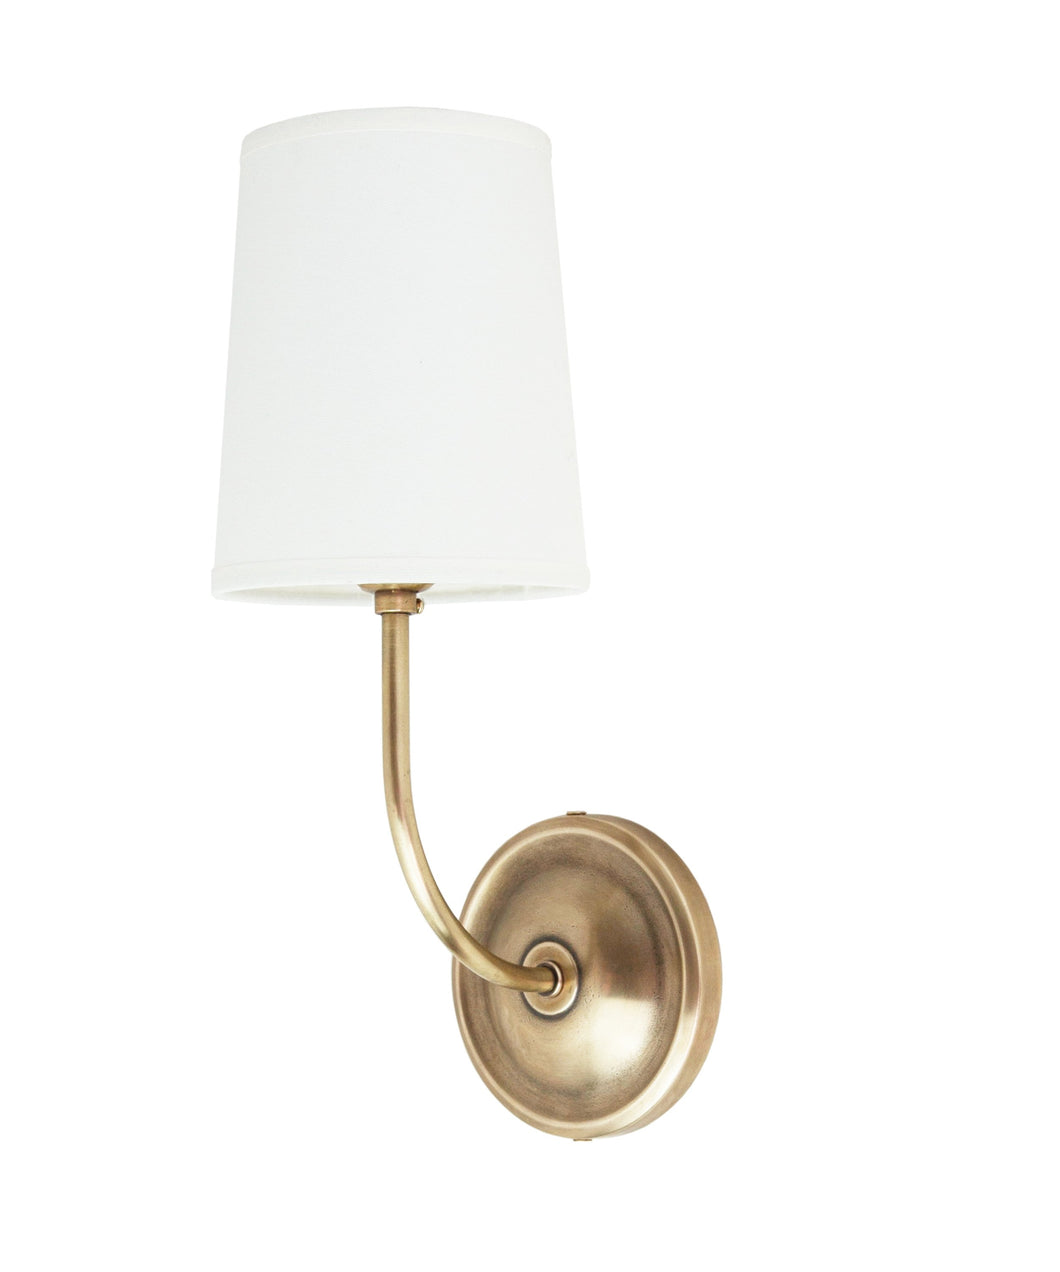 Sheffield Wall Sconce with Linen Shade, Antique Brass